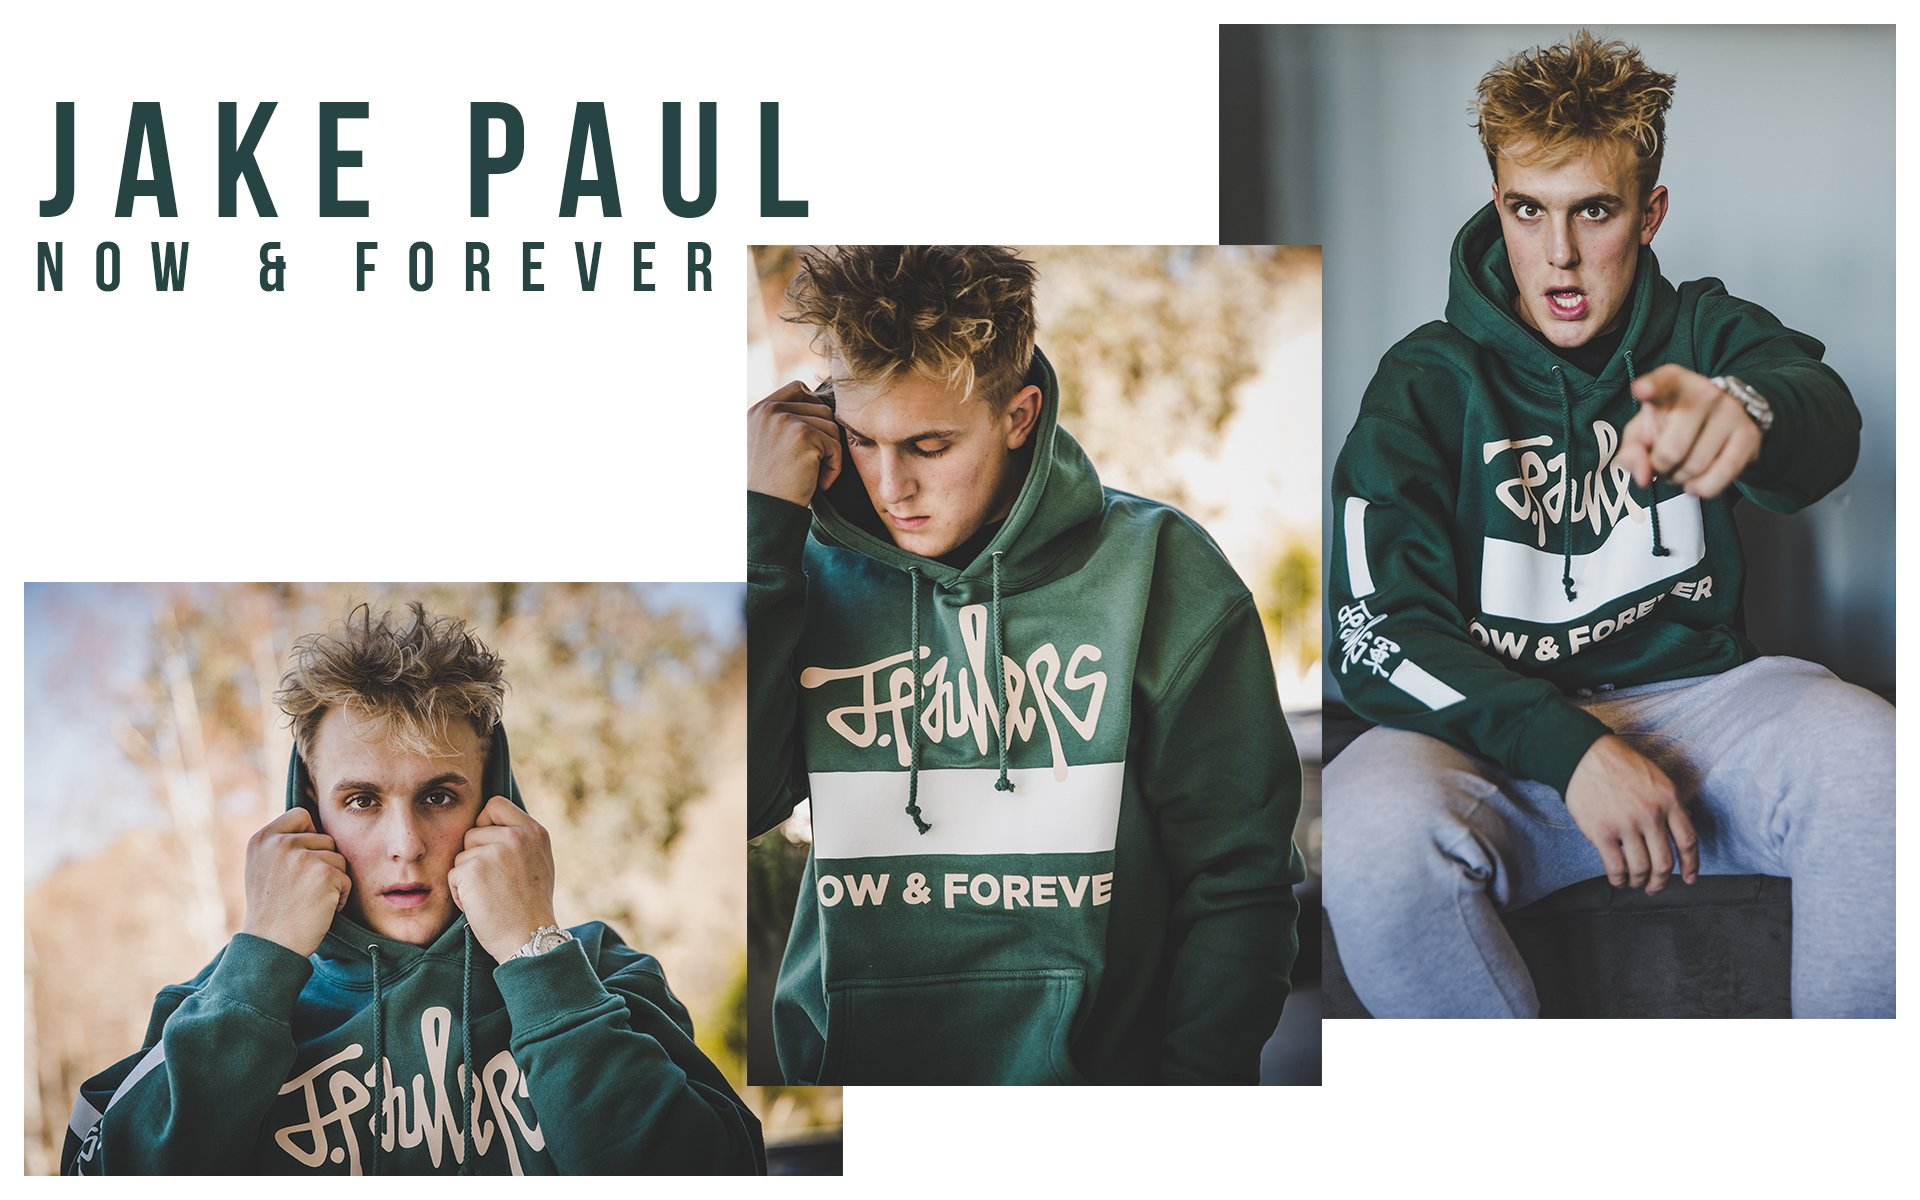 Don't miss this one. The @jakepaul Now & Forever hoodie is ��  Get it here: https://t.co/vQ0oJfzZgJ https://t.co/U9WaTMHvIi